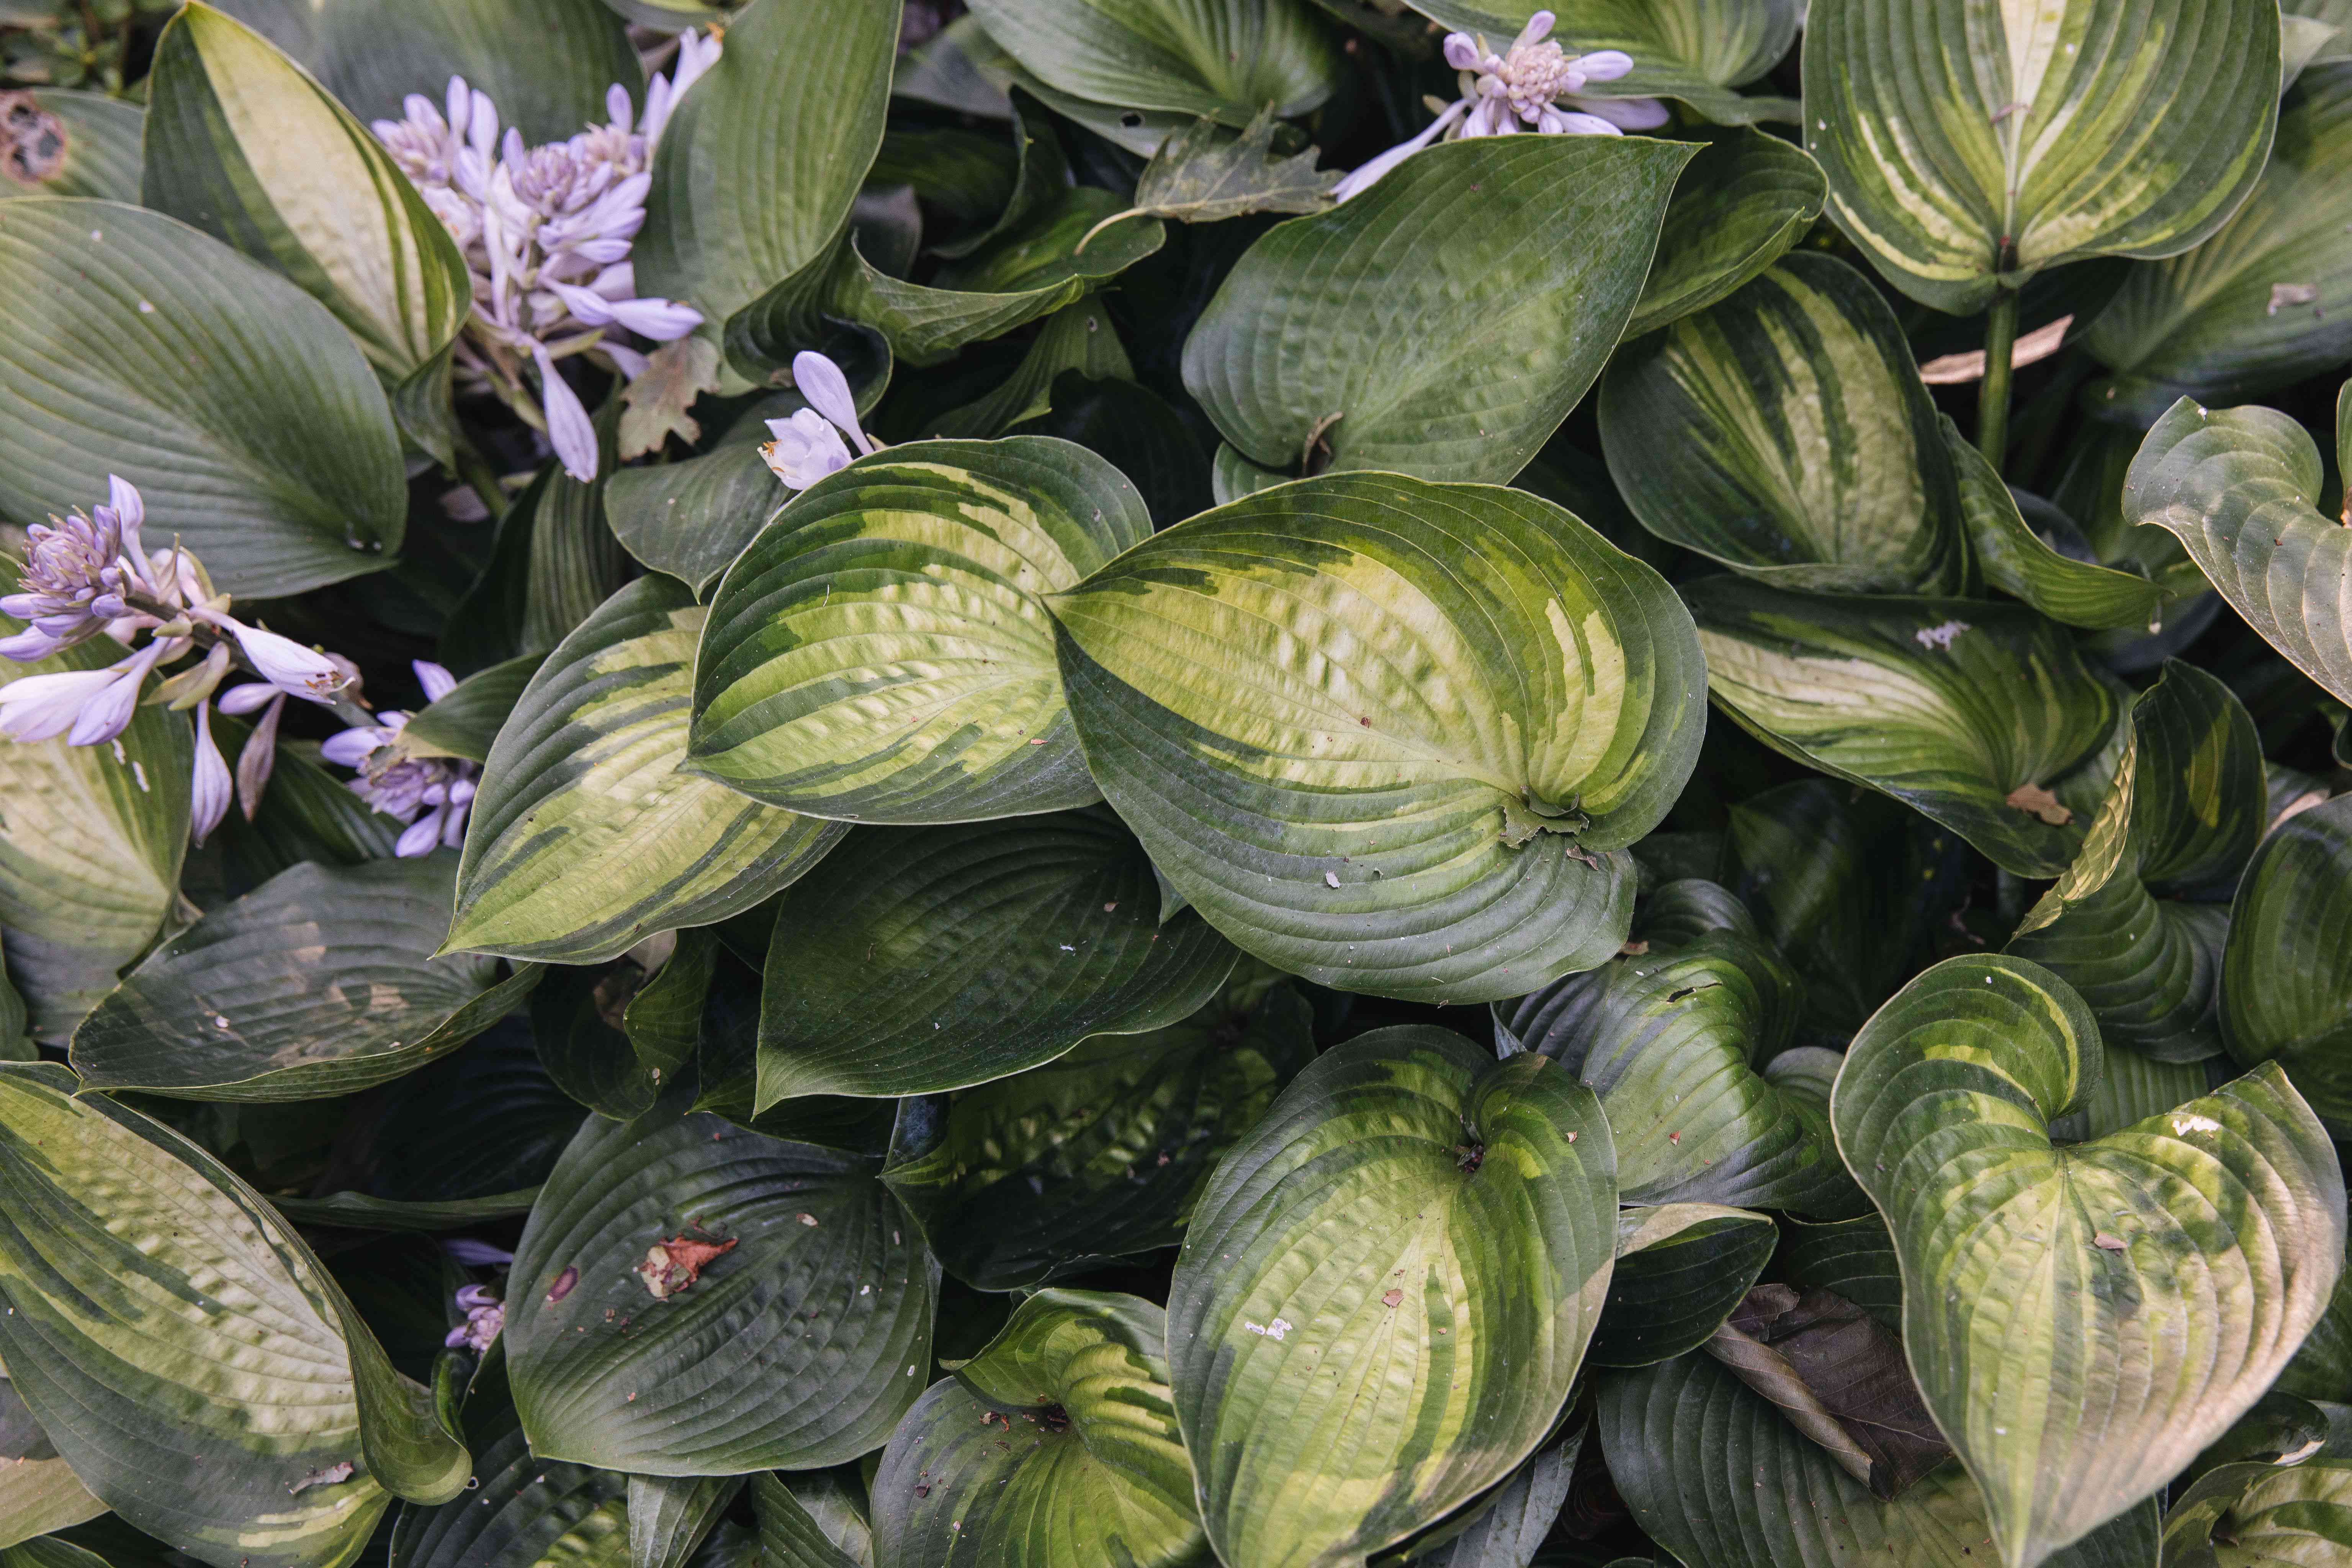 Hostas plant with lime green variegated leaves clustered on top of each other